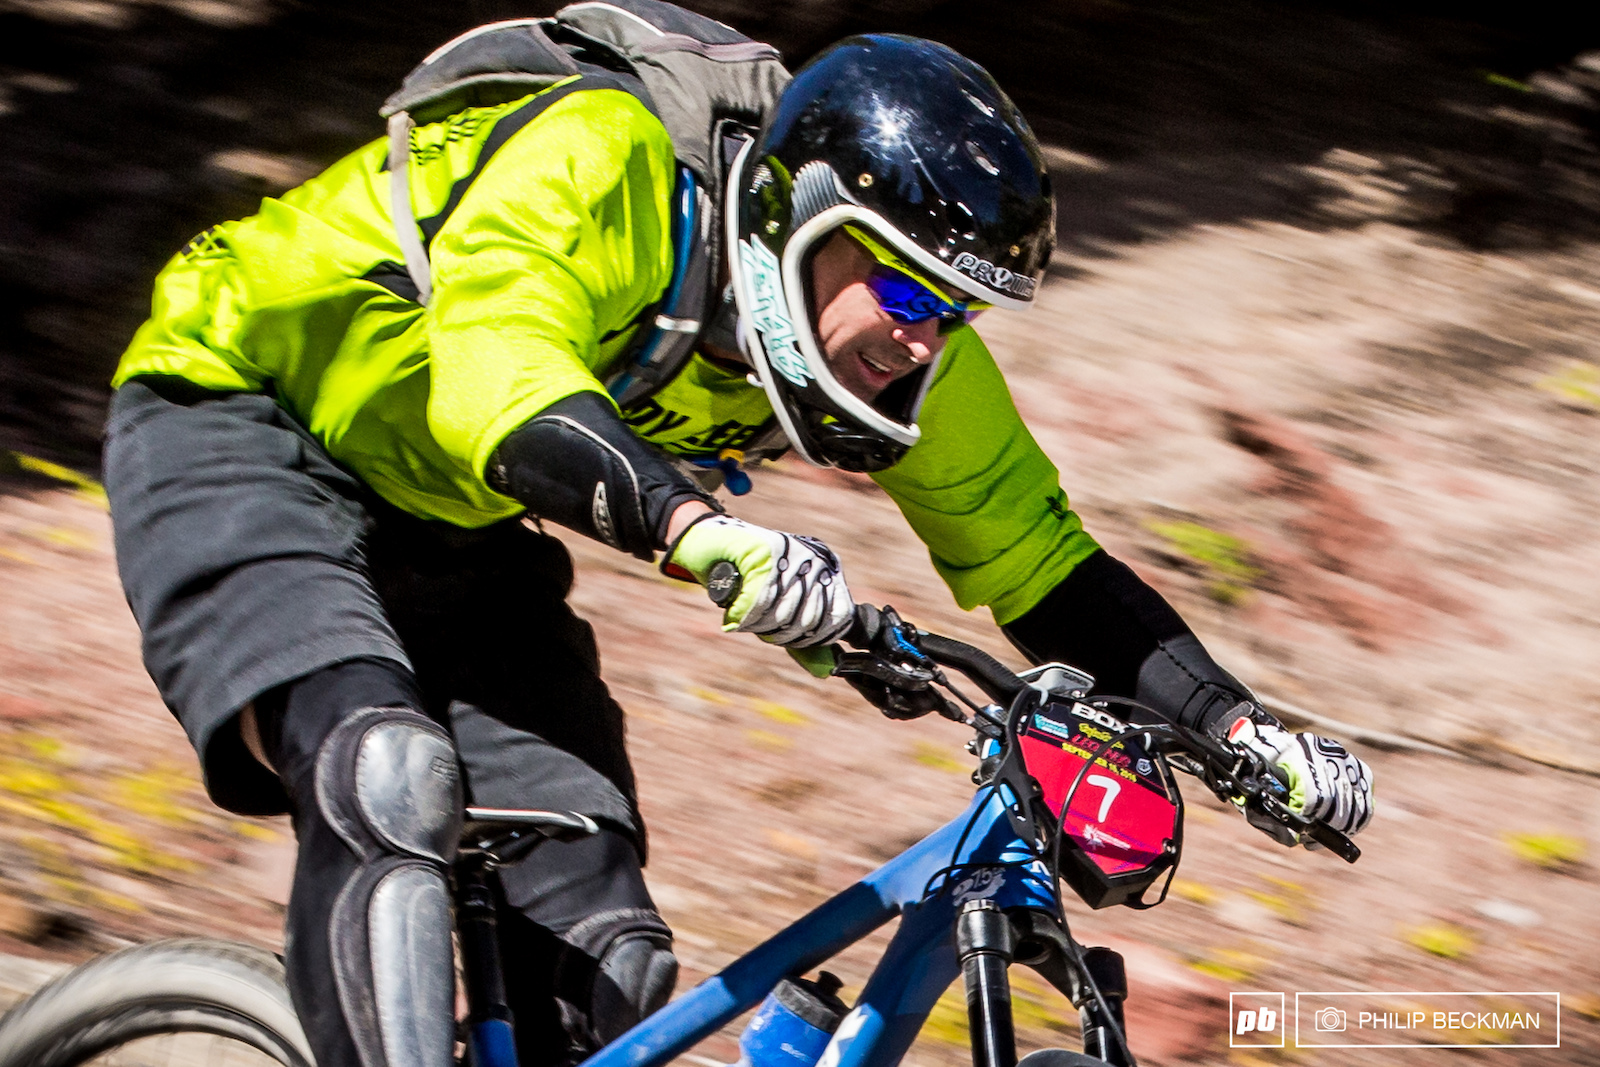 If you like to go fast on a mountain bike the Kamikaze Downhill will put a smile on your face.